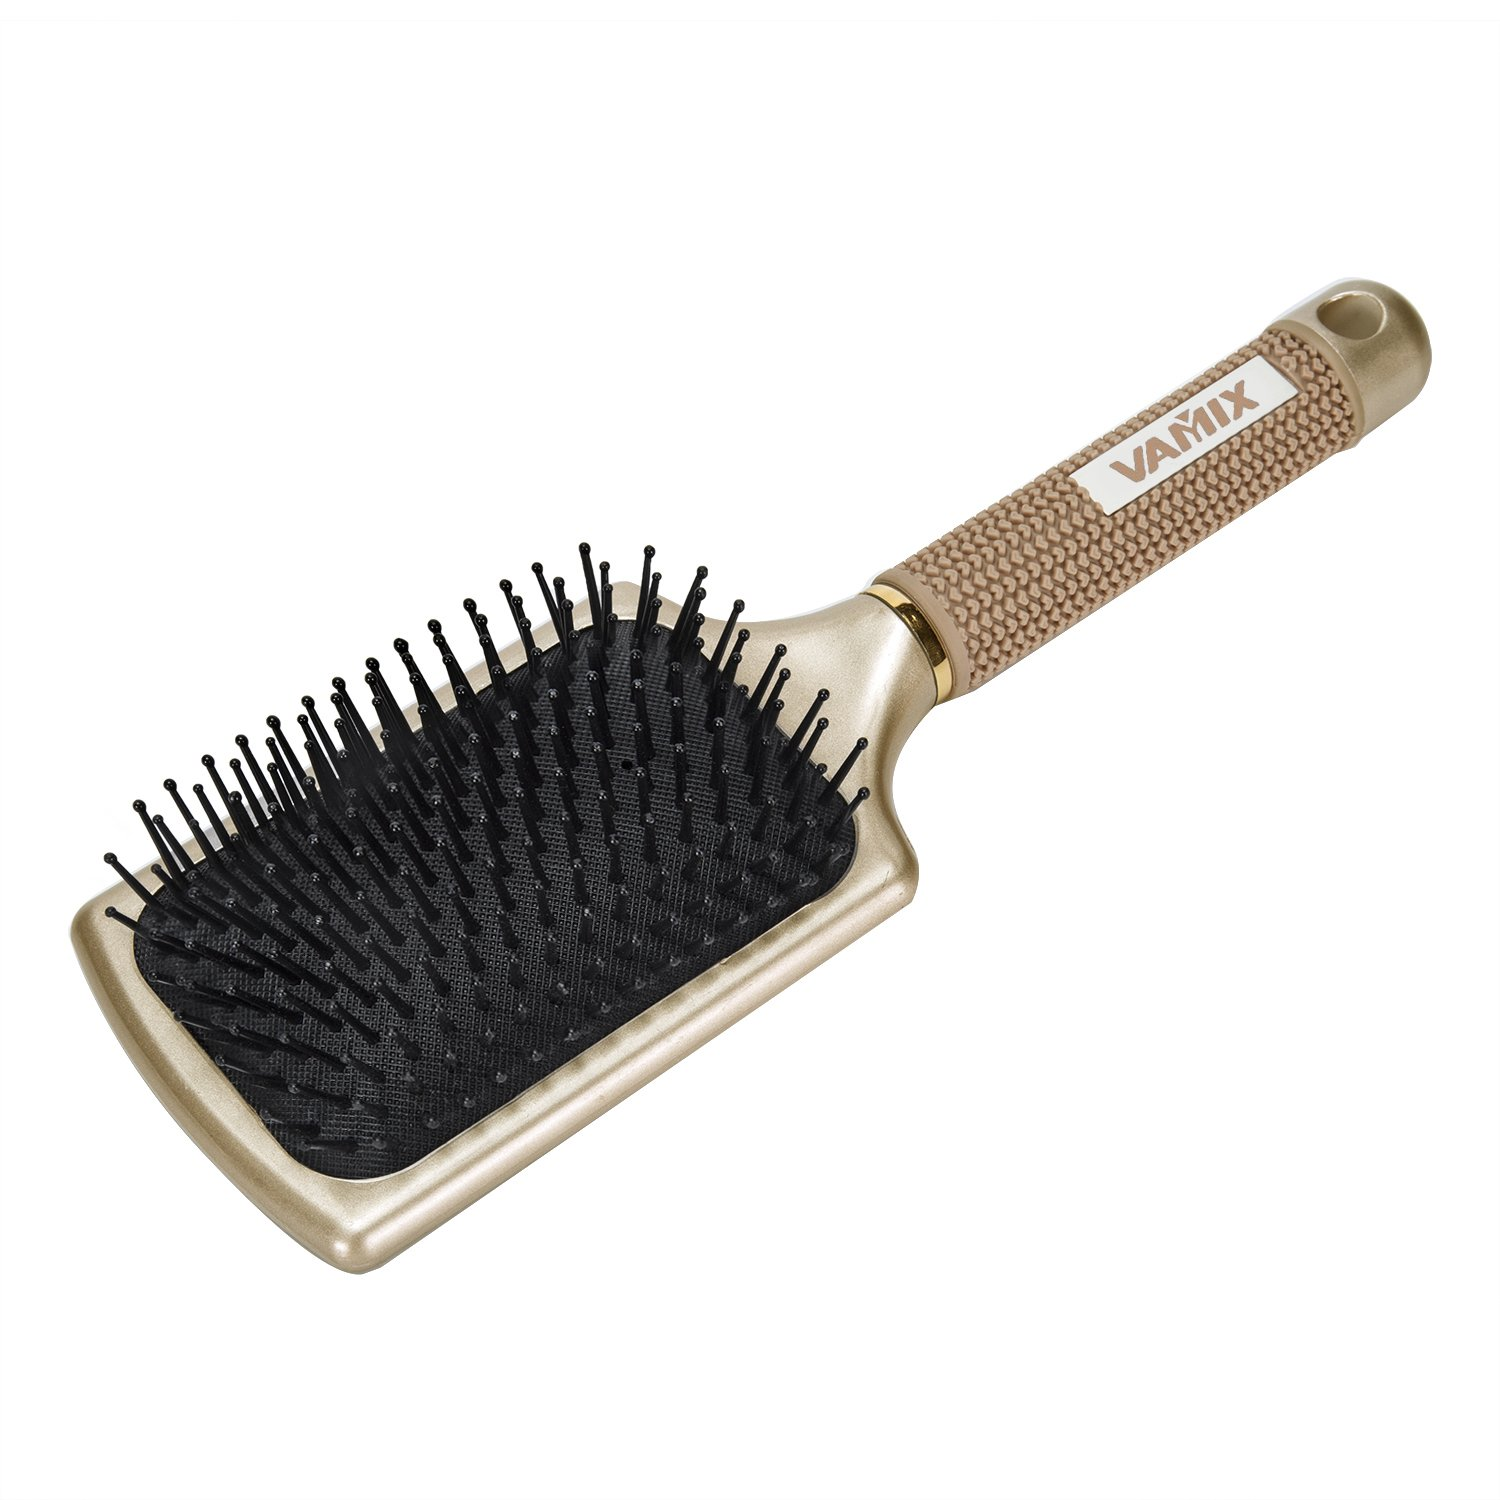 VAMIX Velvet Touch Paddle Hair Brush for Men Women & Kids, Detangling Brush for Straightening & Smoothing Hair(GOLD)